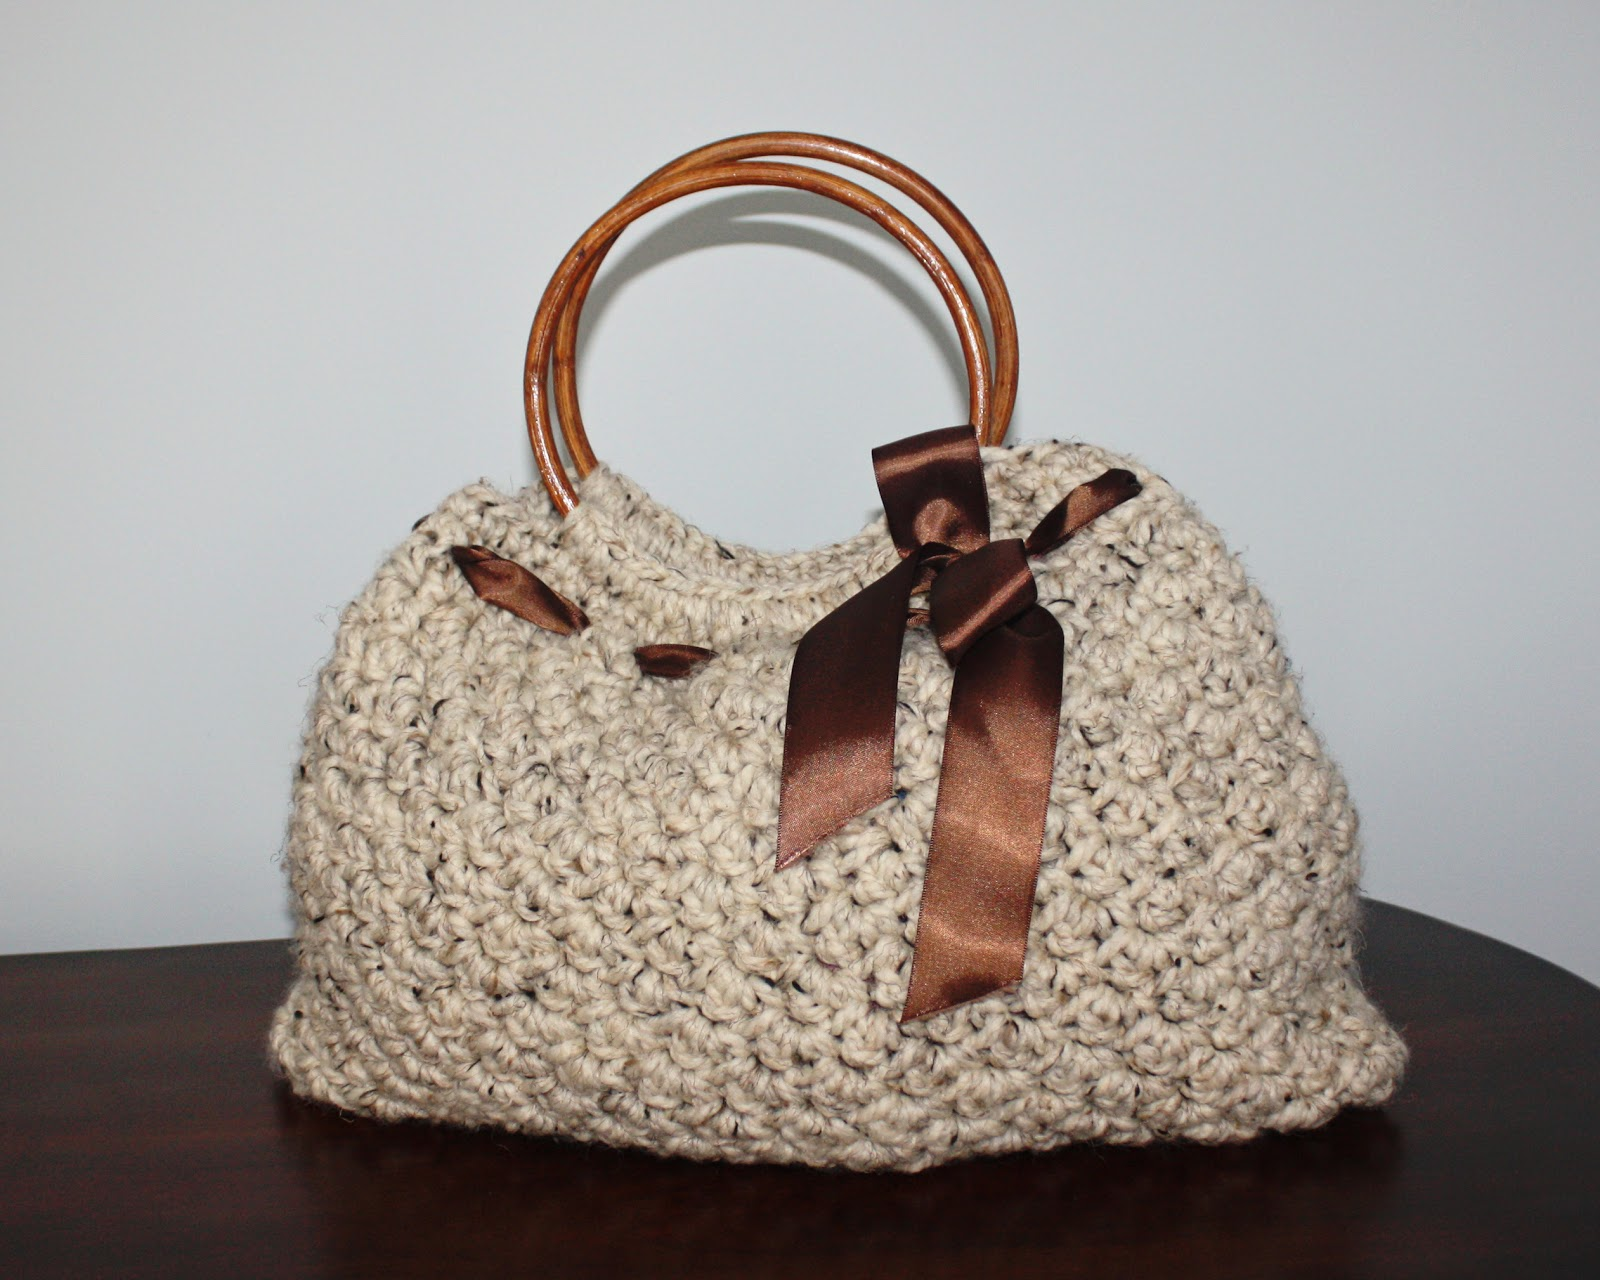 Pretty Darn Adorable Crochet: Crochet Handbag/Purse